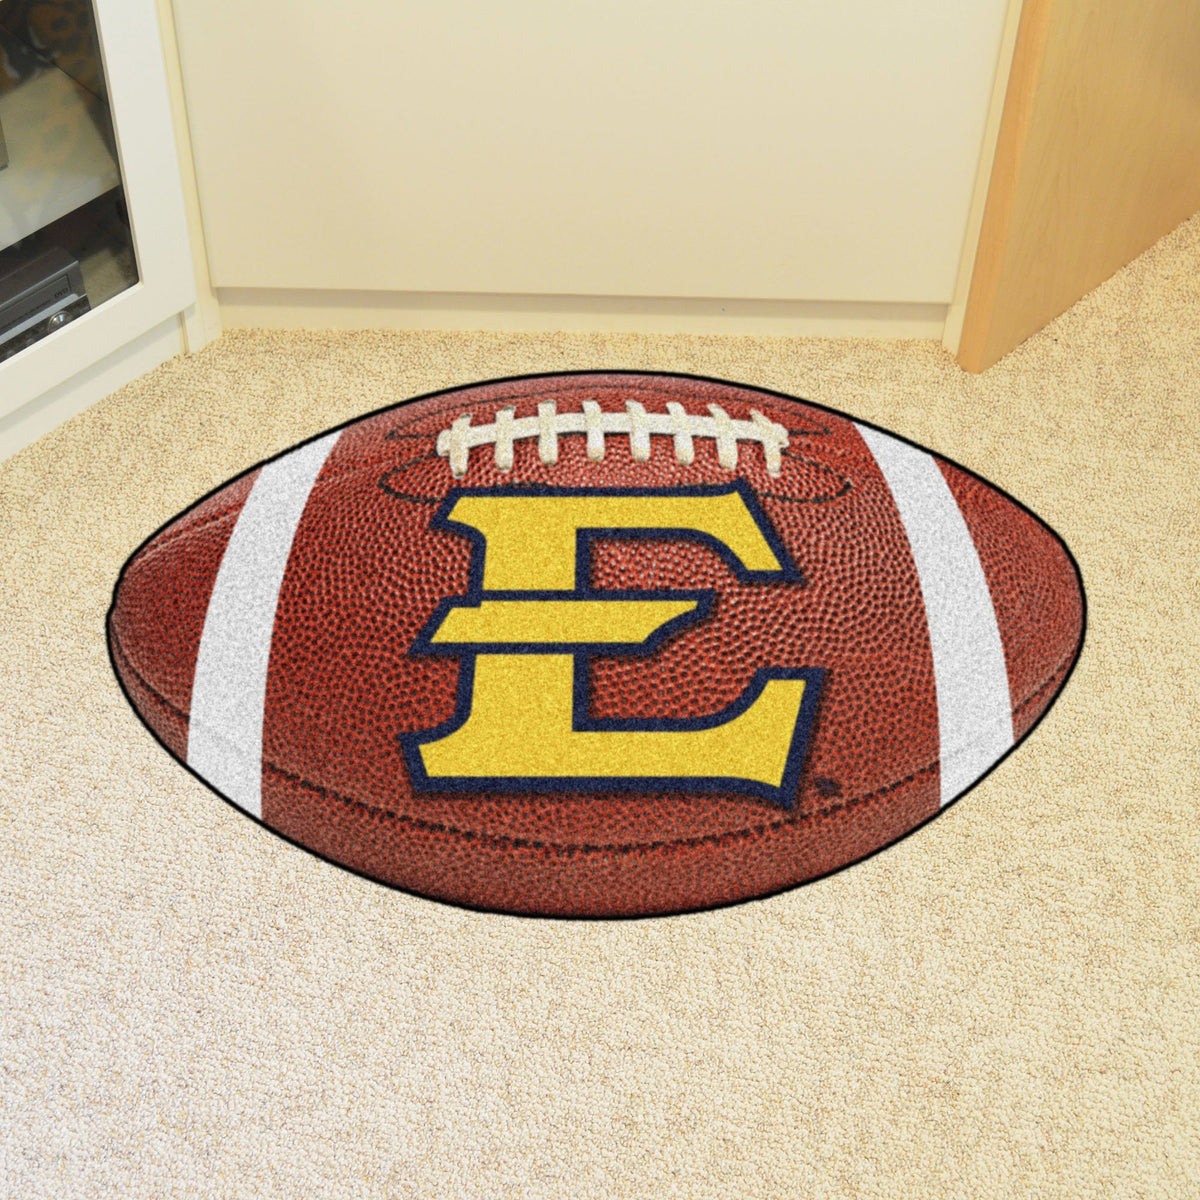 Collegiate - Football Mat: A - K Collegiate Mats, Rectangular Mats, Football Mat, Collegiate, Home Fan Mats East Tennessee